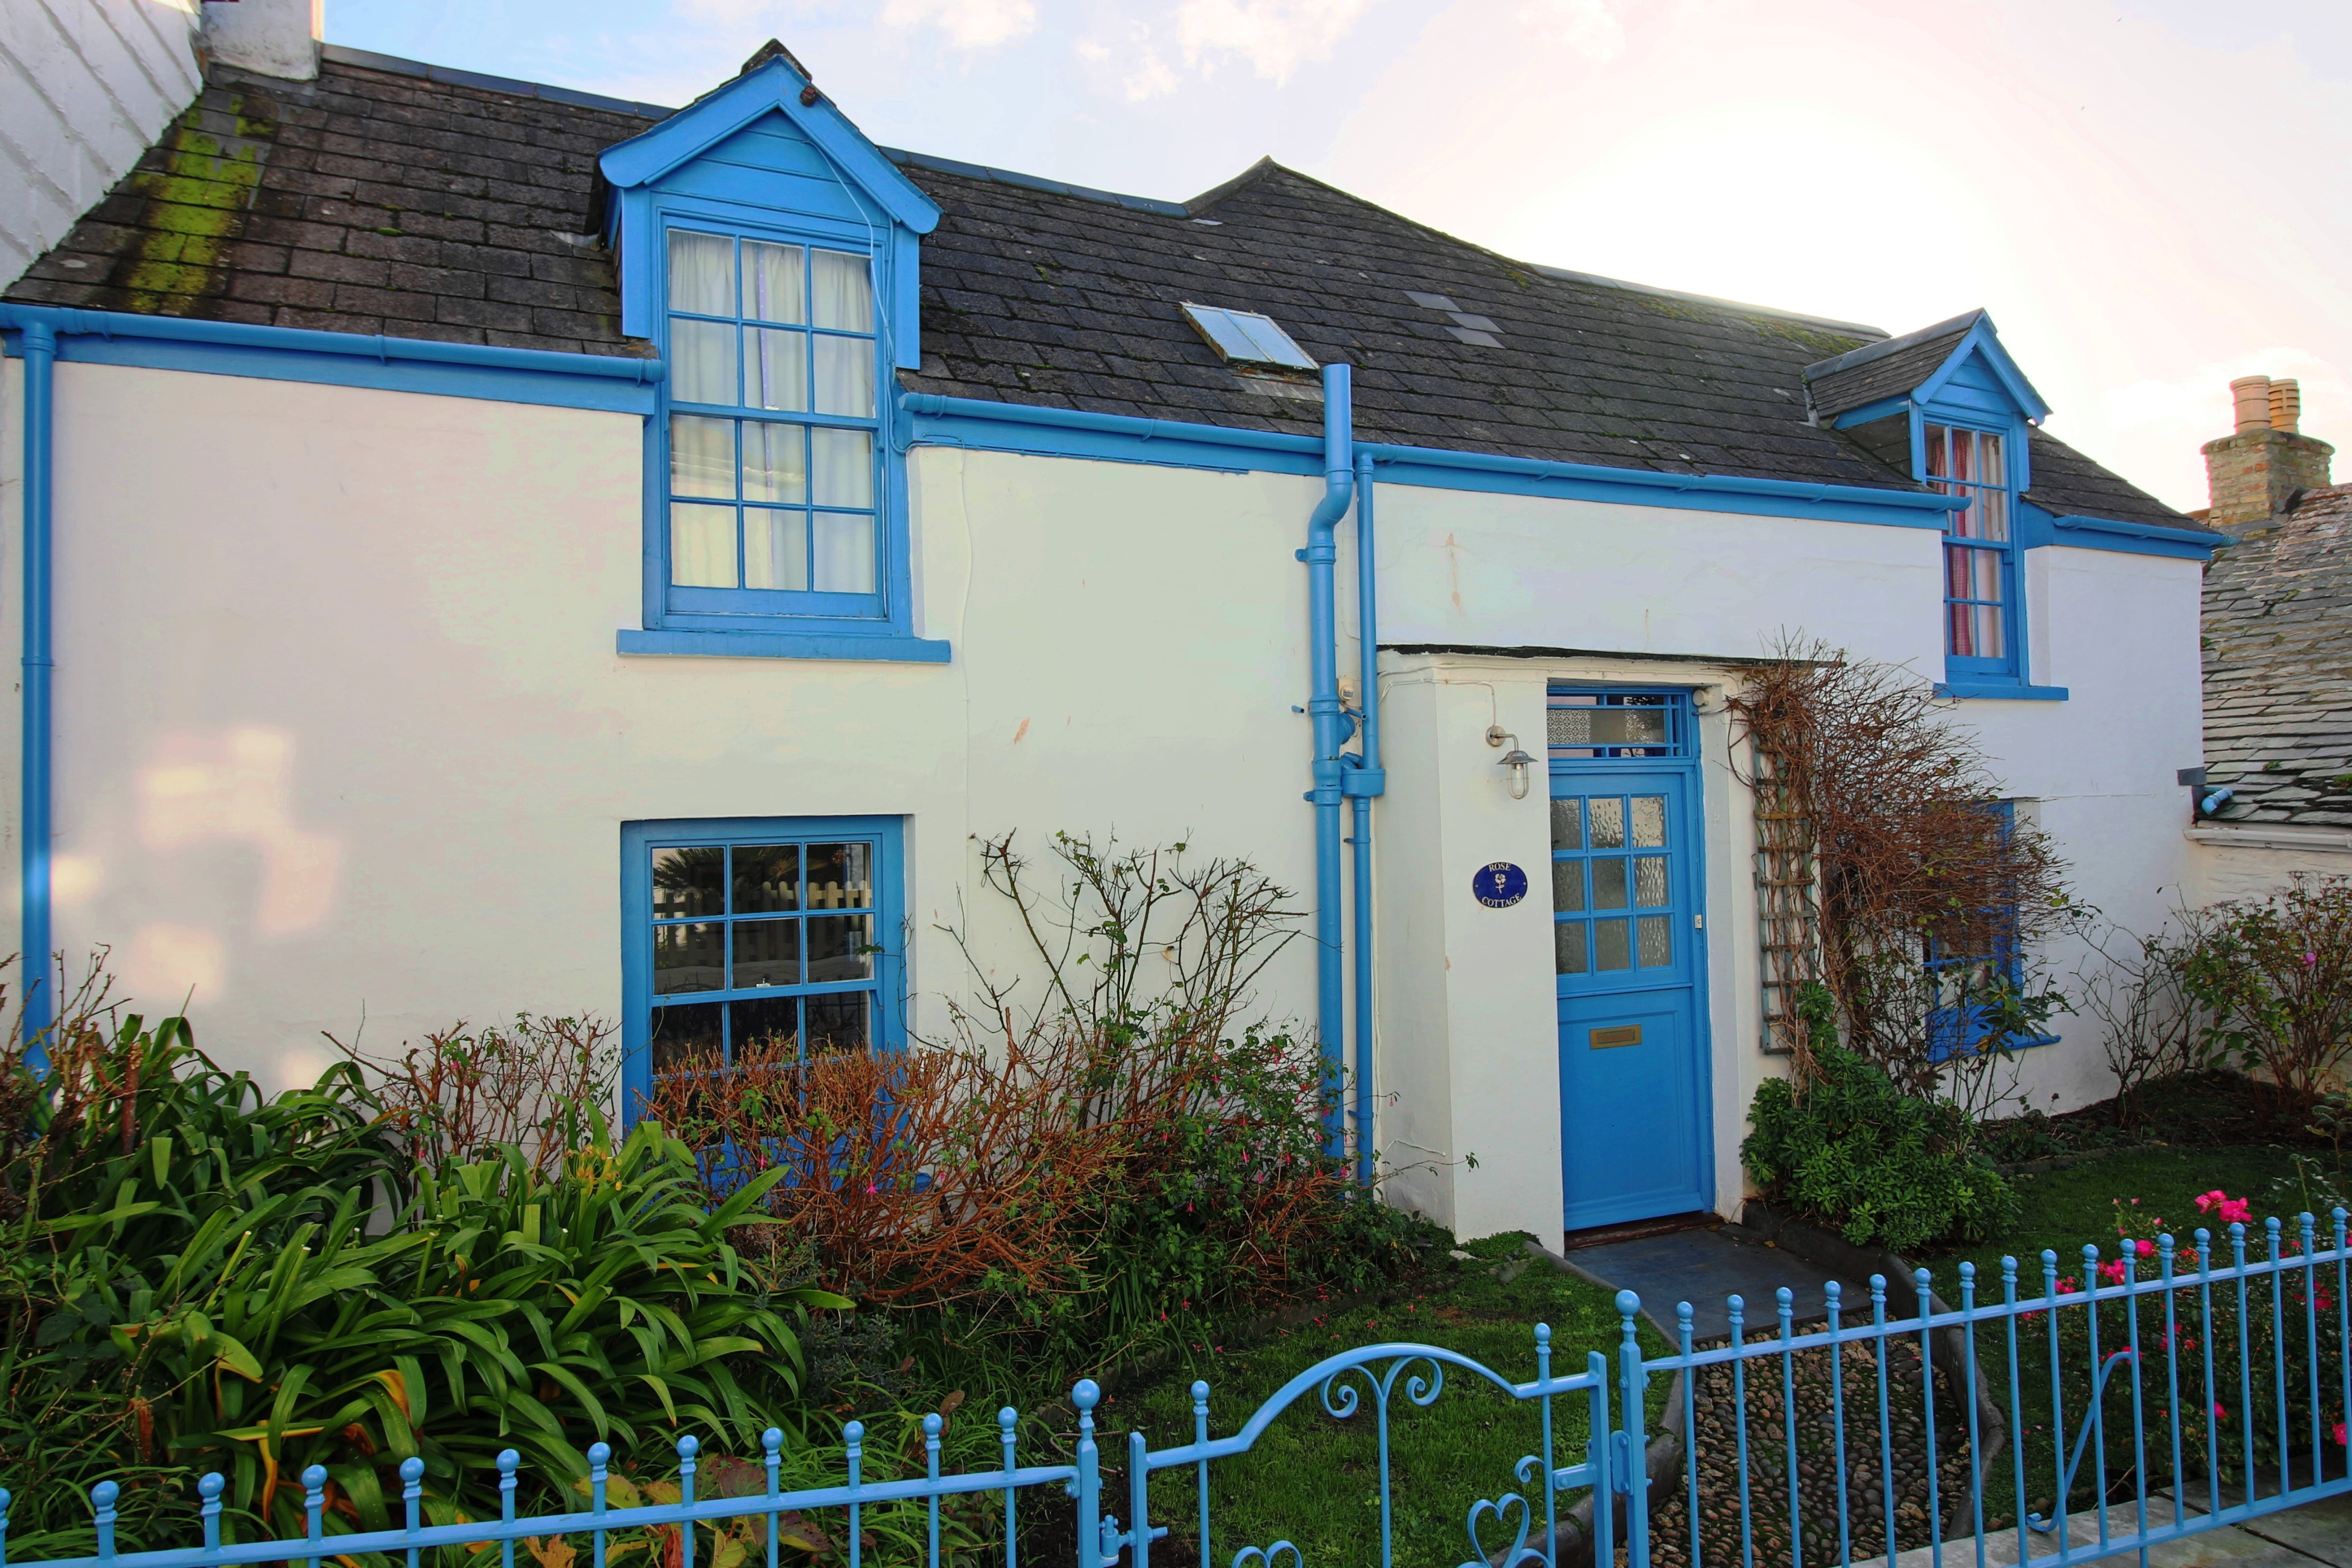 3 Bedroom Cottage For Sale Dolphin Street Port Isaac Pl